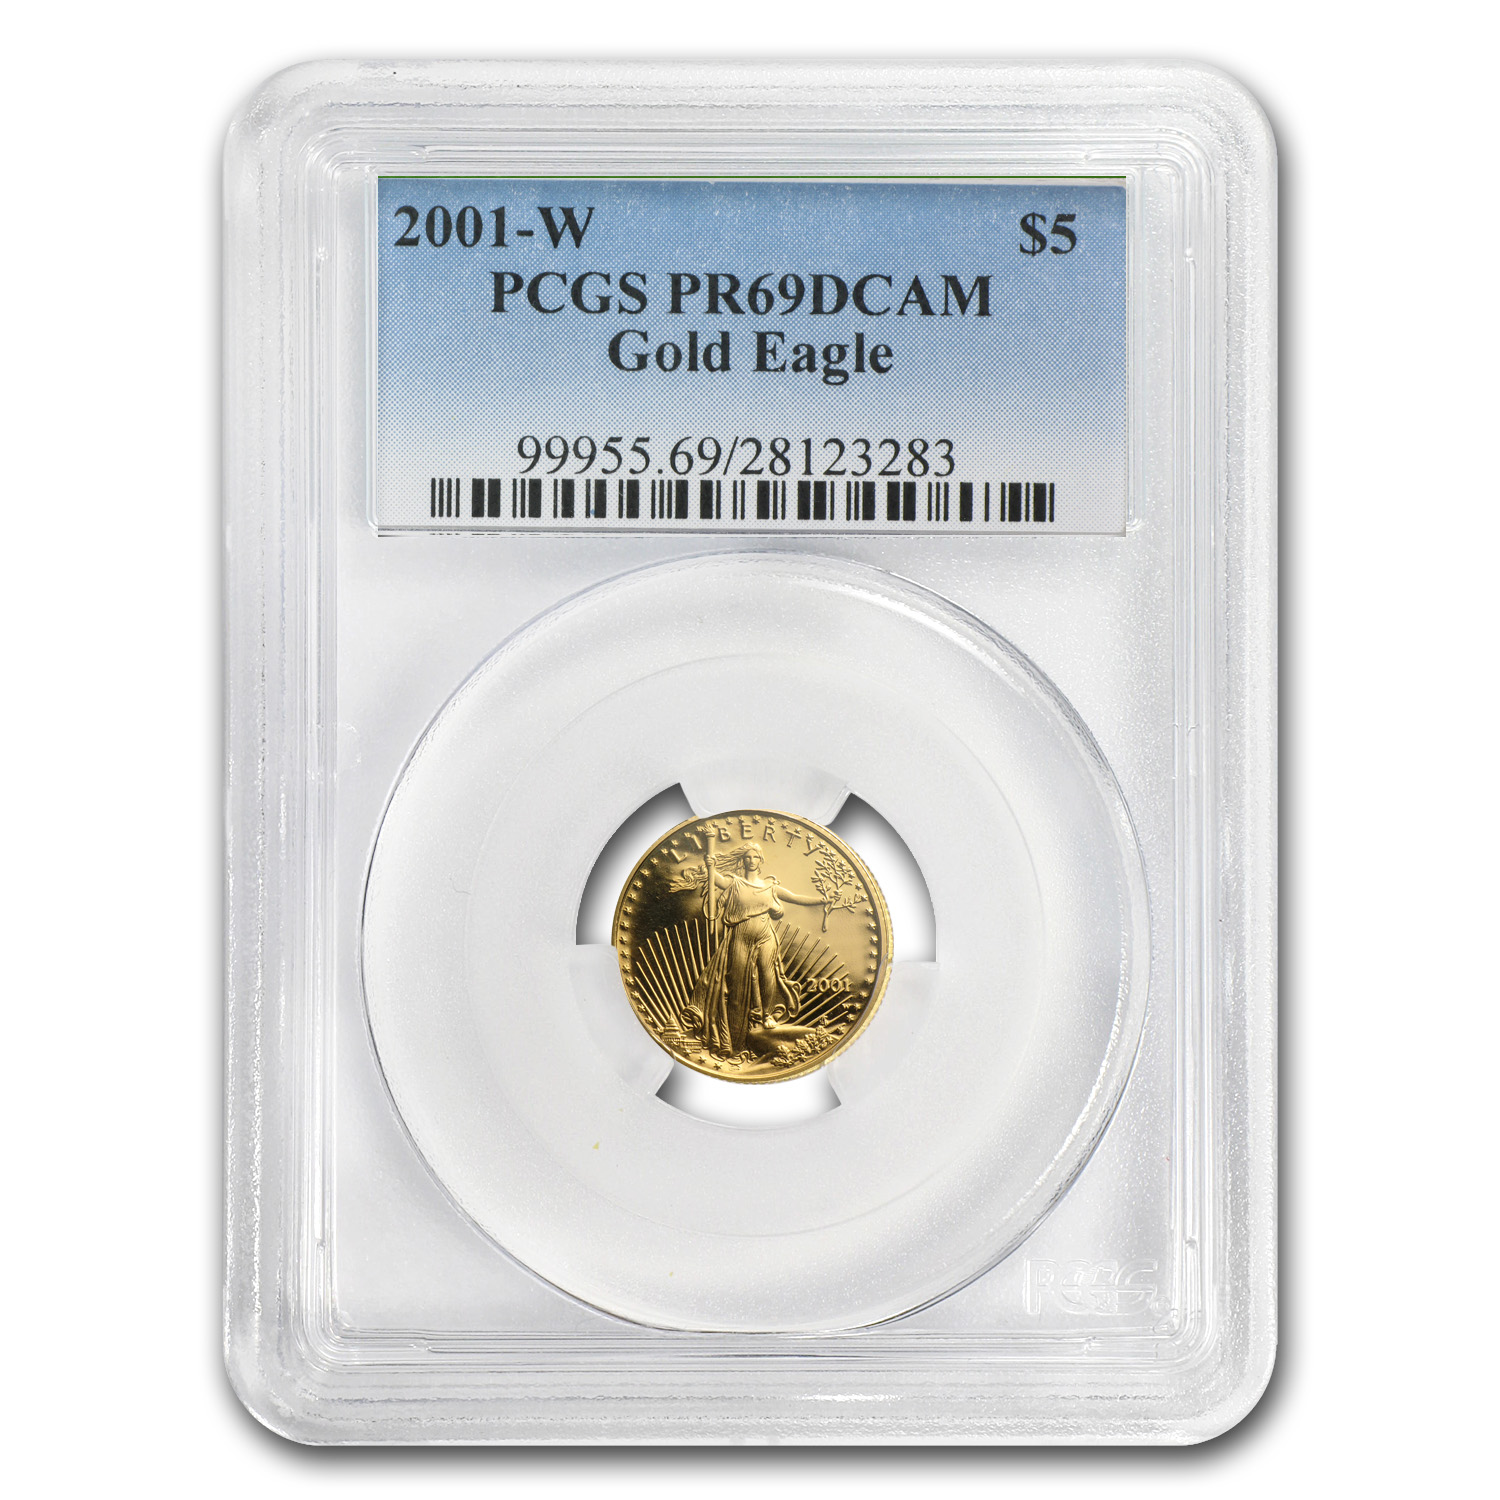 2001-W 1/10 oz Proof Gold American Eagle PR-69 PCGS